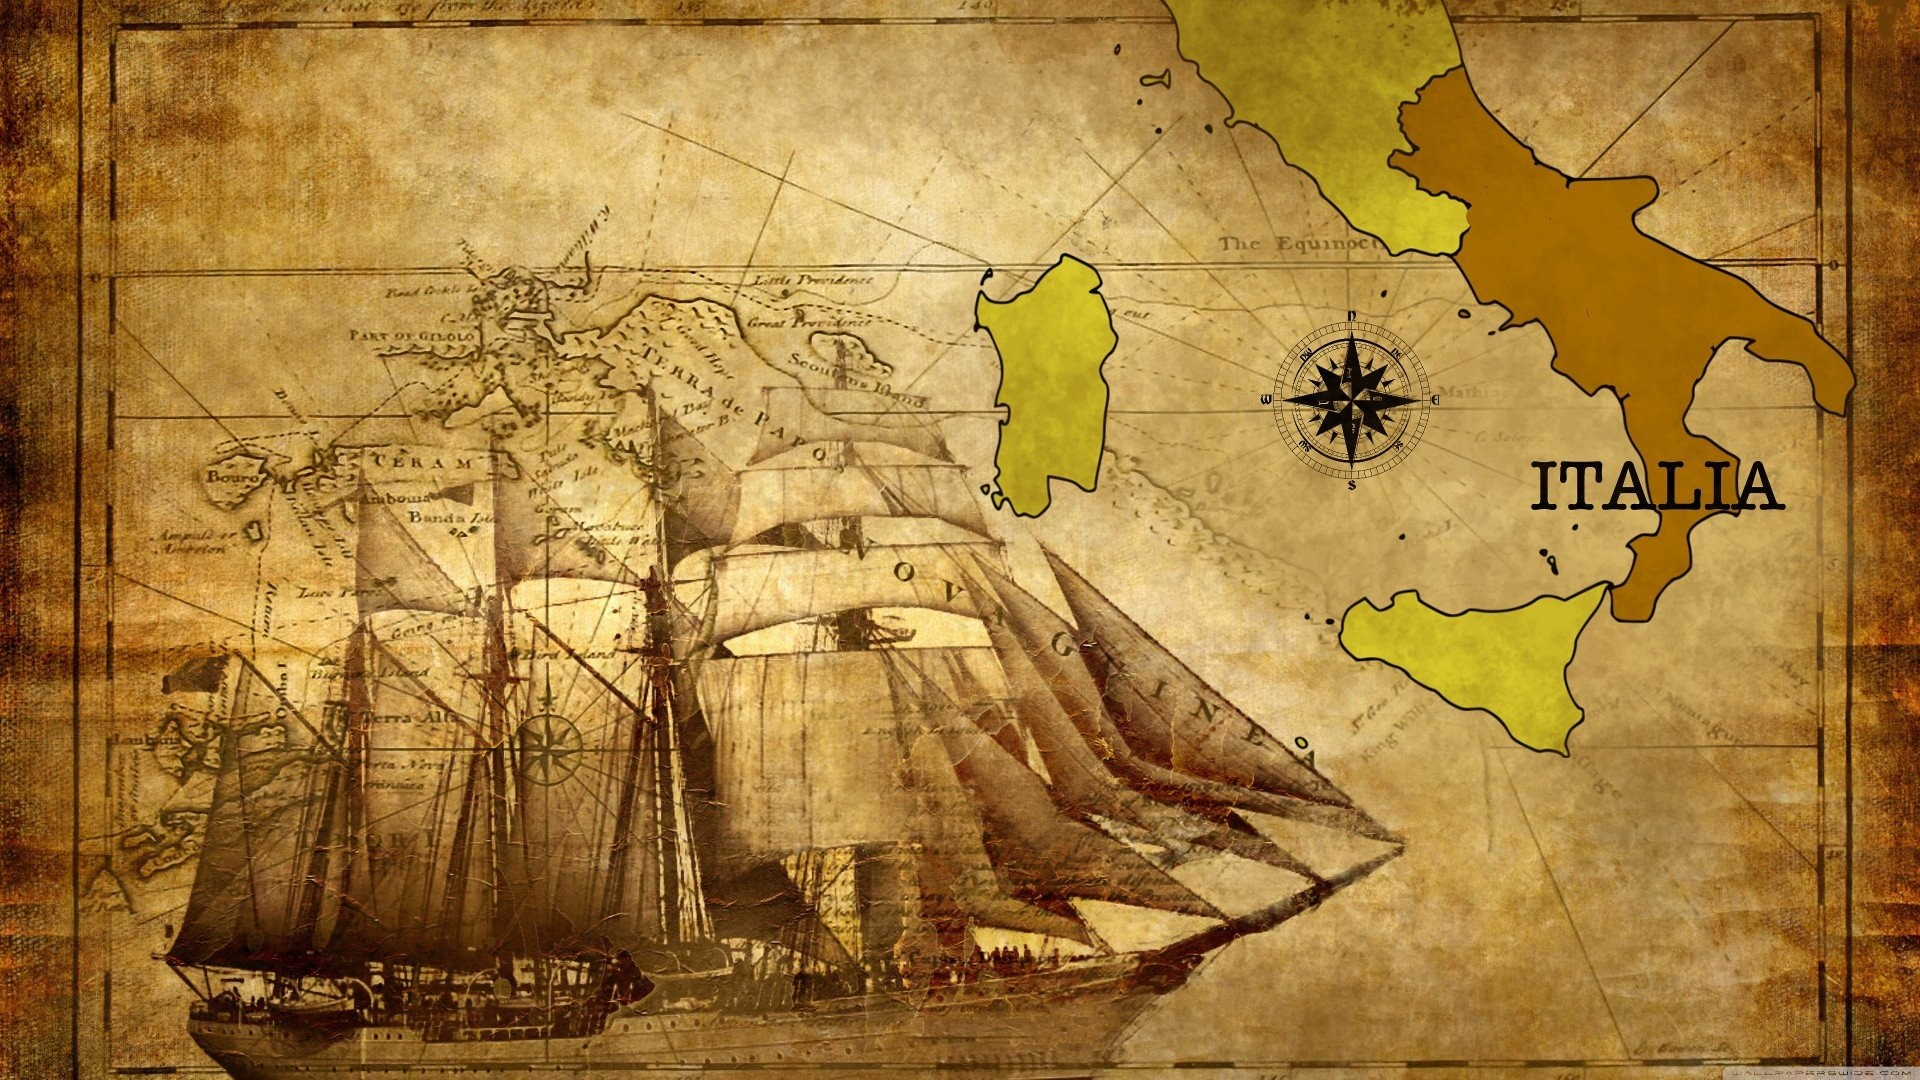 Res: 1920x1080, Similar Wallpapers. old, Map, Italy, Calabria, Historic, Compass, Vessel,  Ship